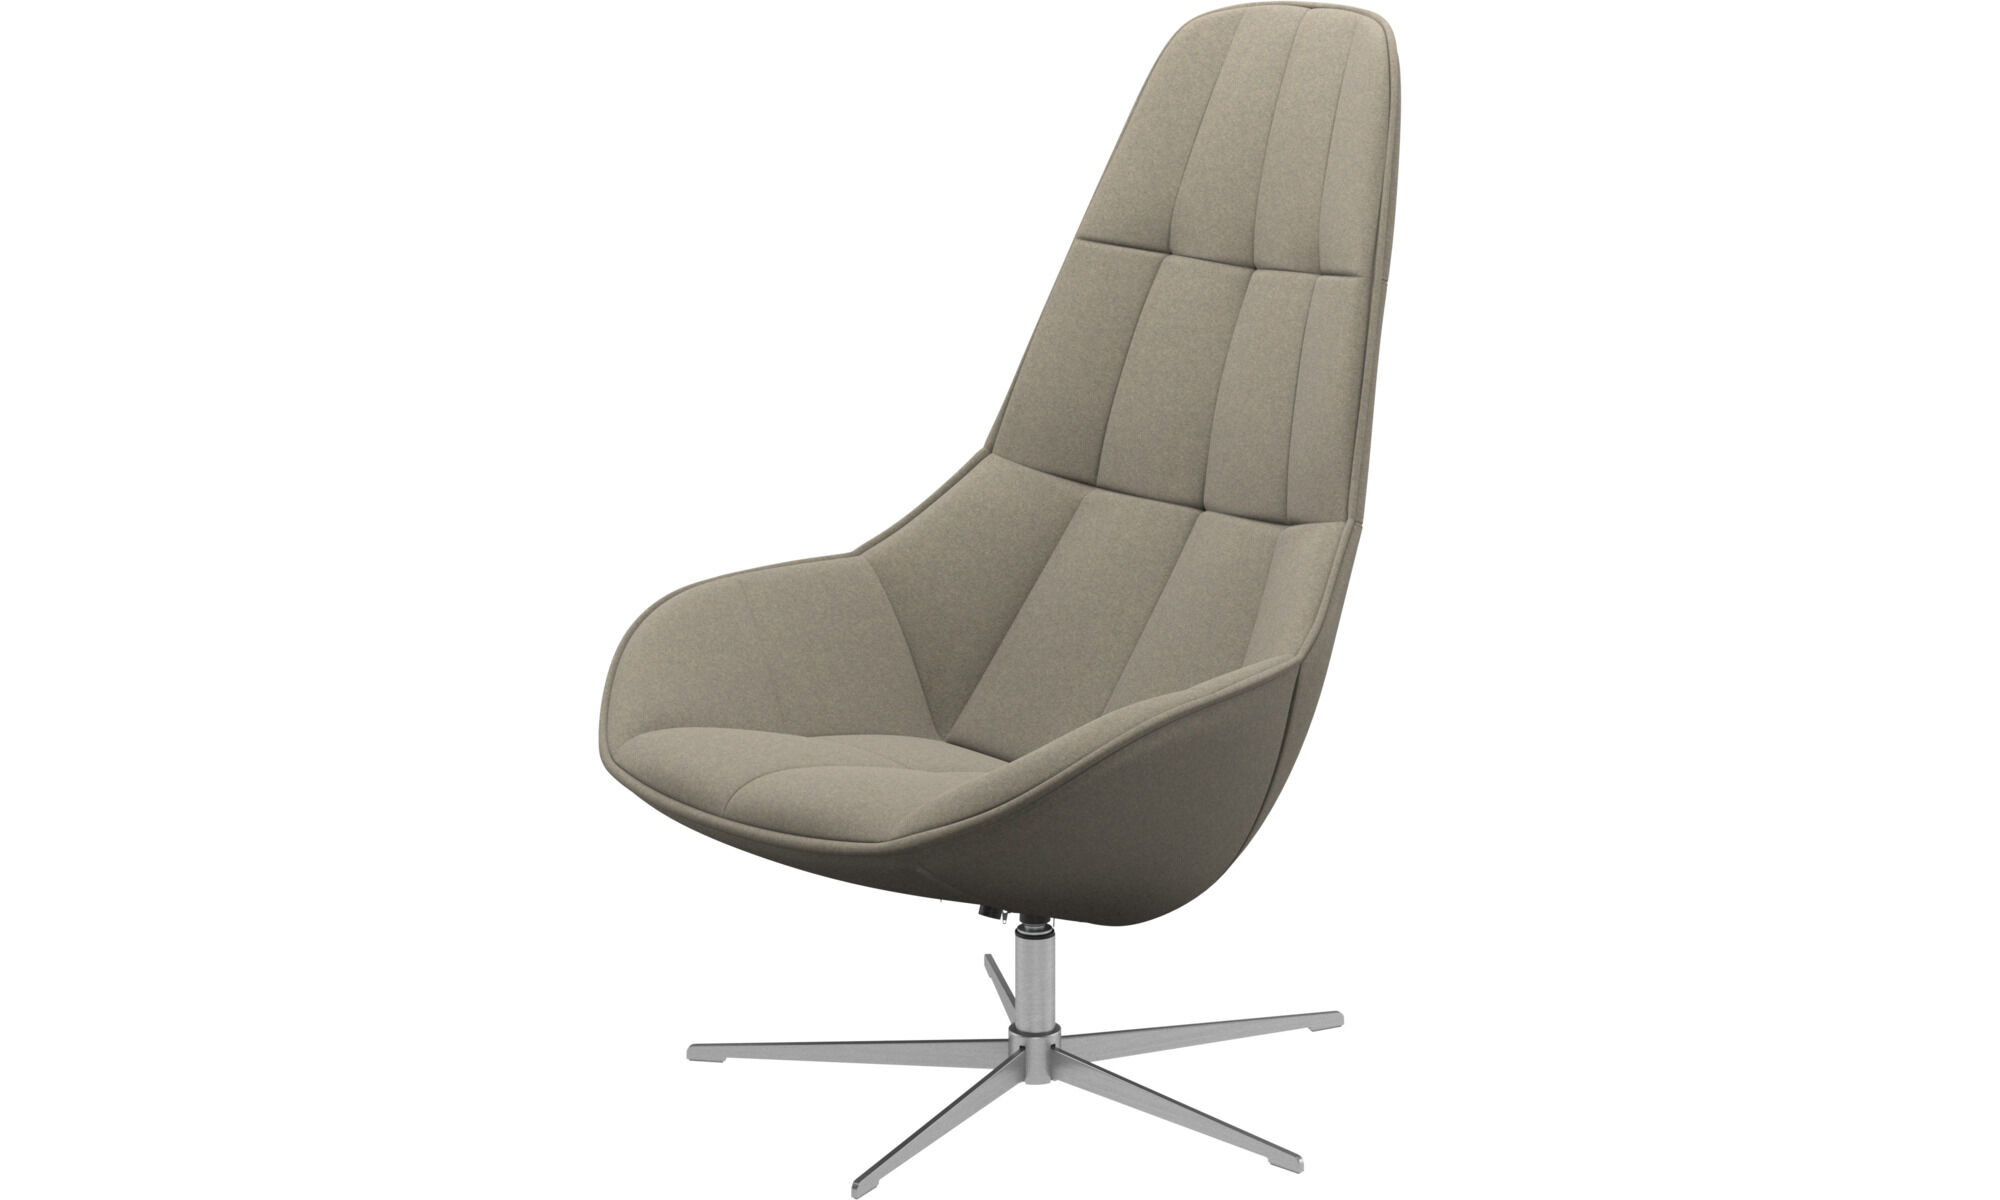 Armchairs - Boston chair with swivel function. Also available with tilt function - Beige -  sc 1 st  BoConcept : boconcept chaise - Sectionals, Sofas & Couches